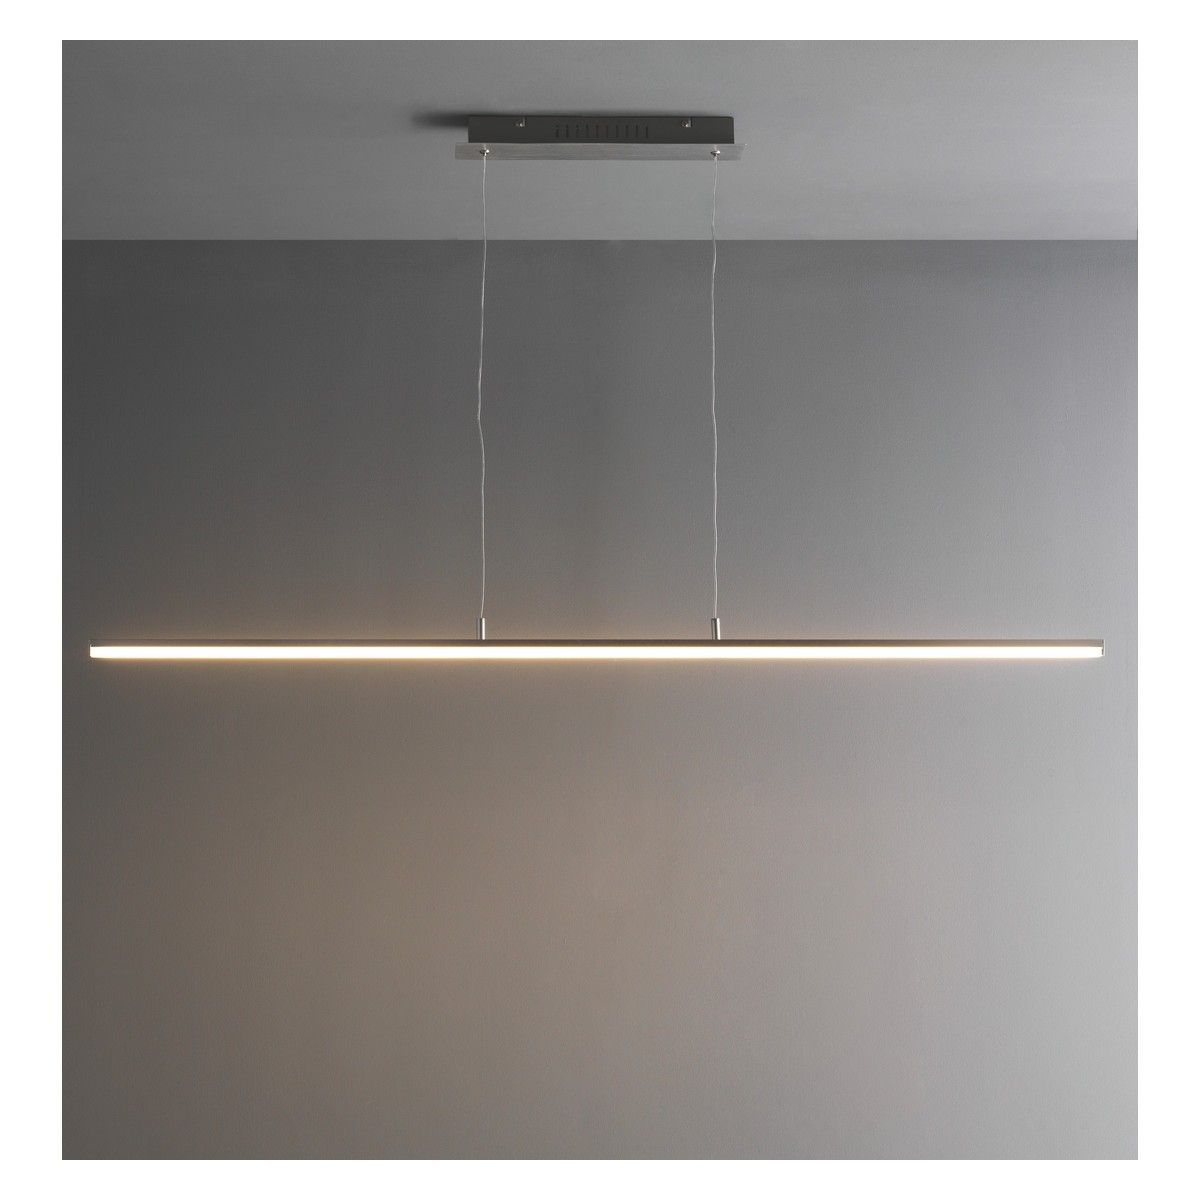 Strip led strip ceiling light buy now at habitat uk lighting strip led strip ceiling light buy now at habitat uk mozeypictures Image collections